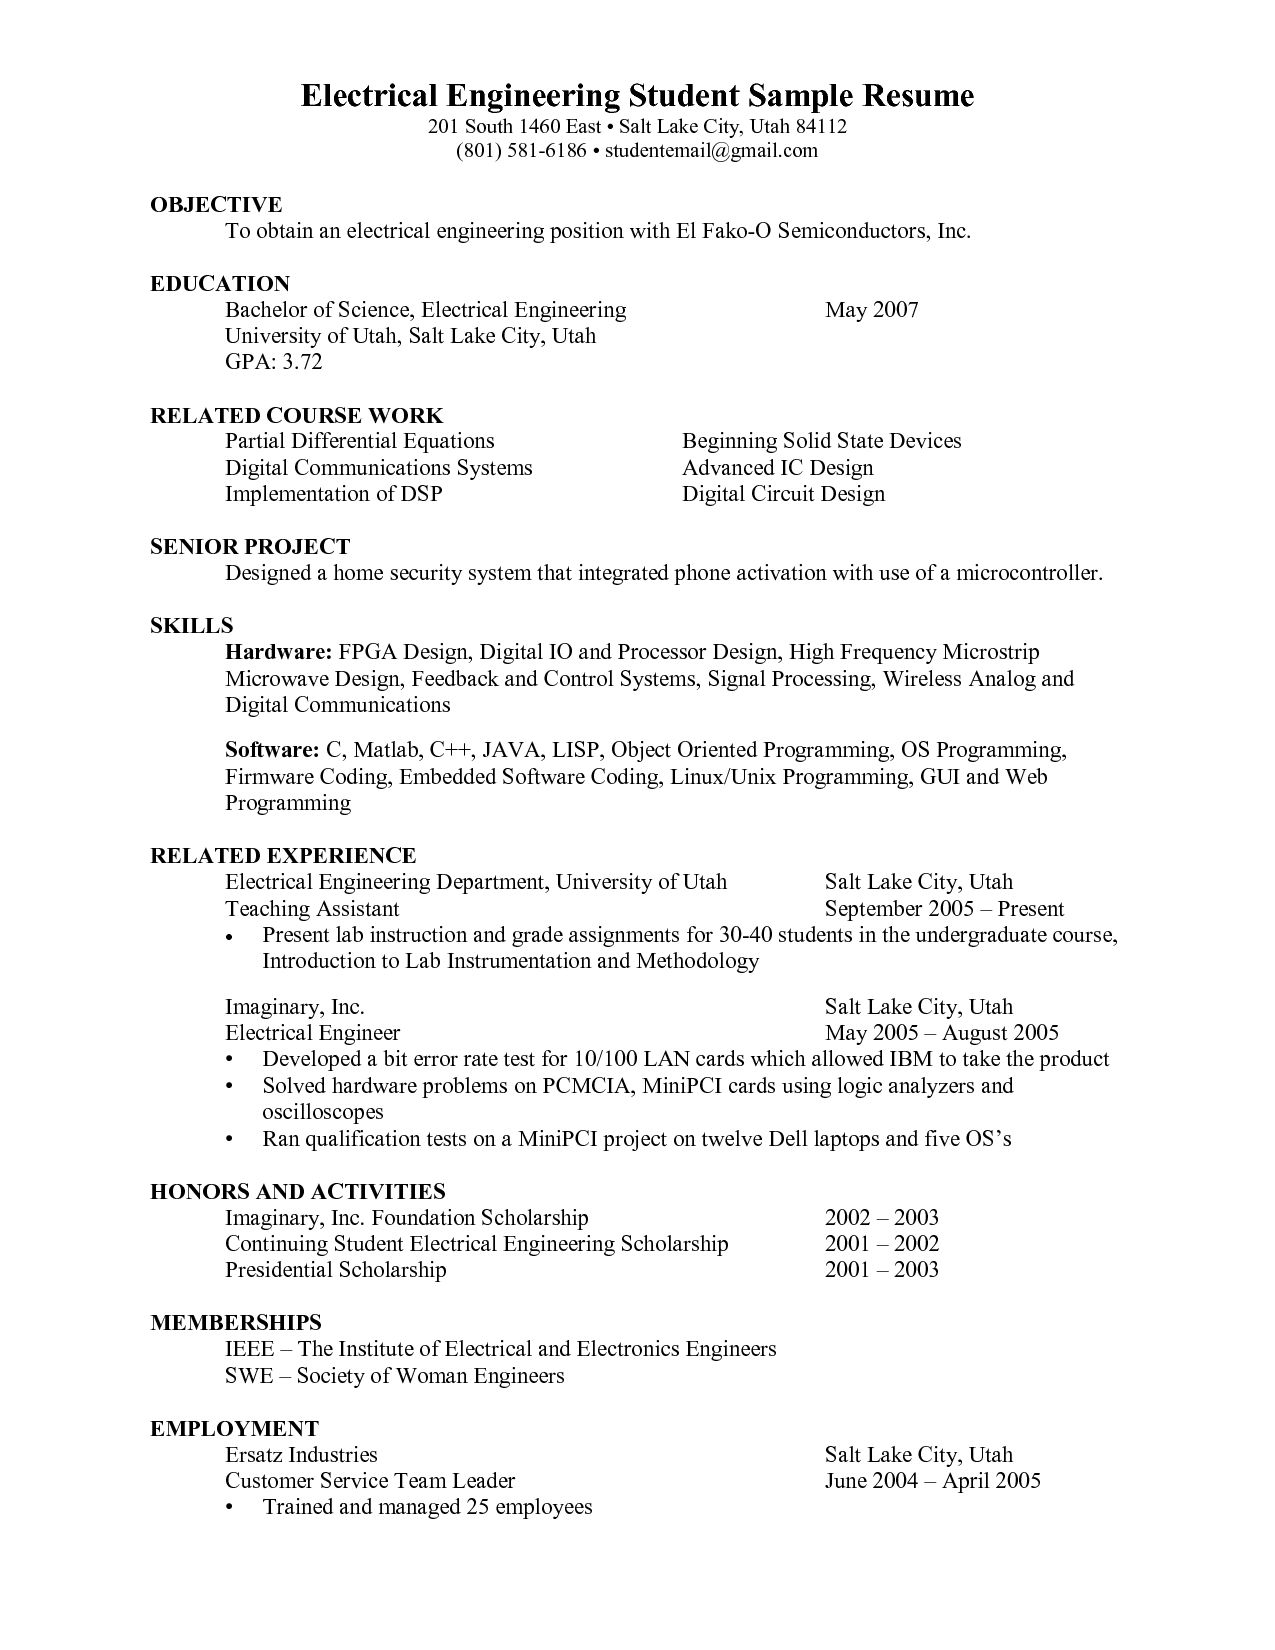 Freshman College Student Resume Writing Sample Resume Paper Free Samples Guides Format Cover